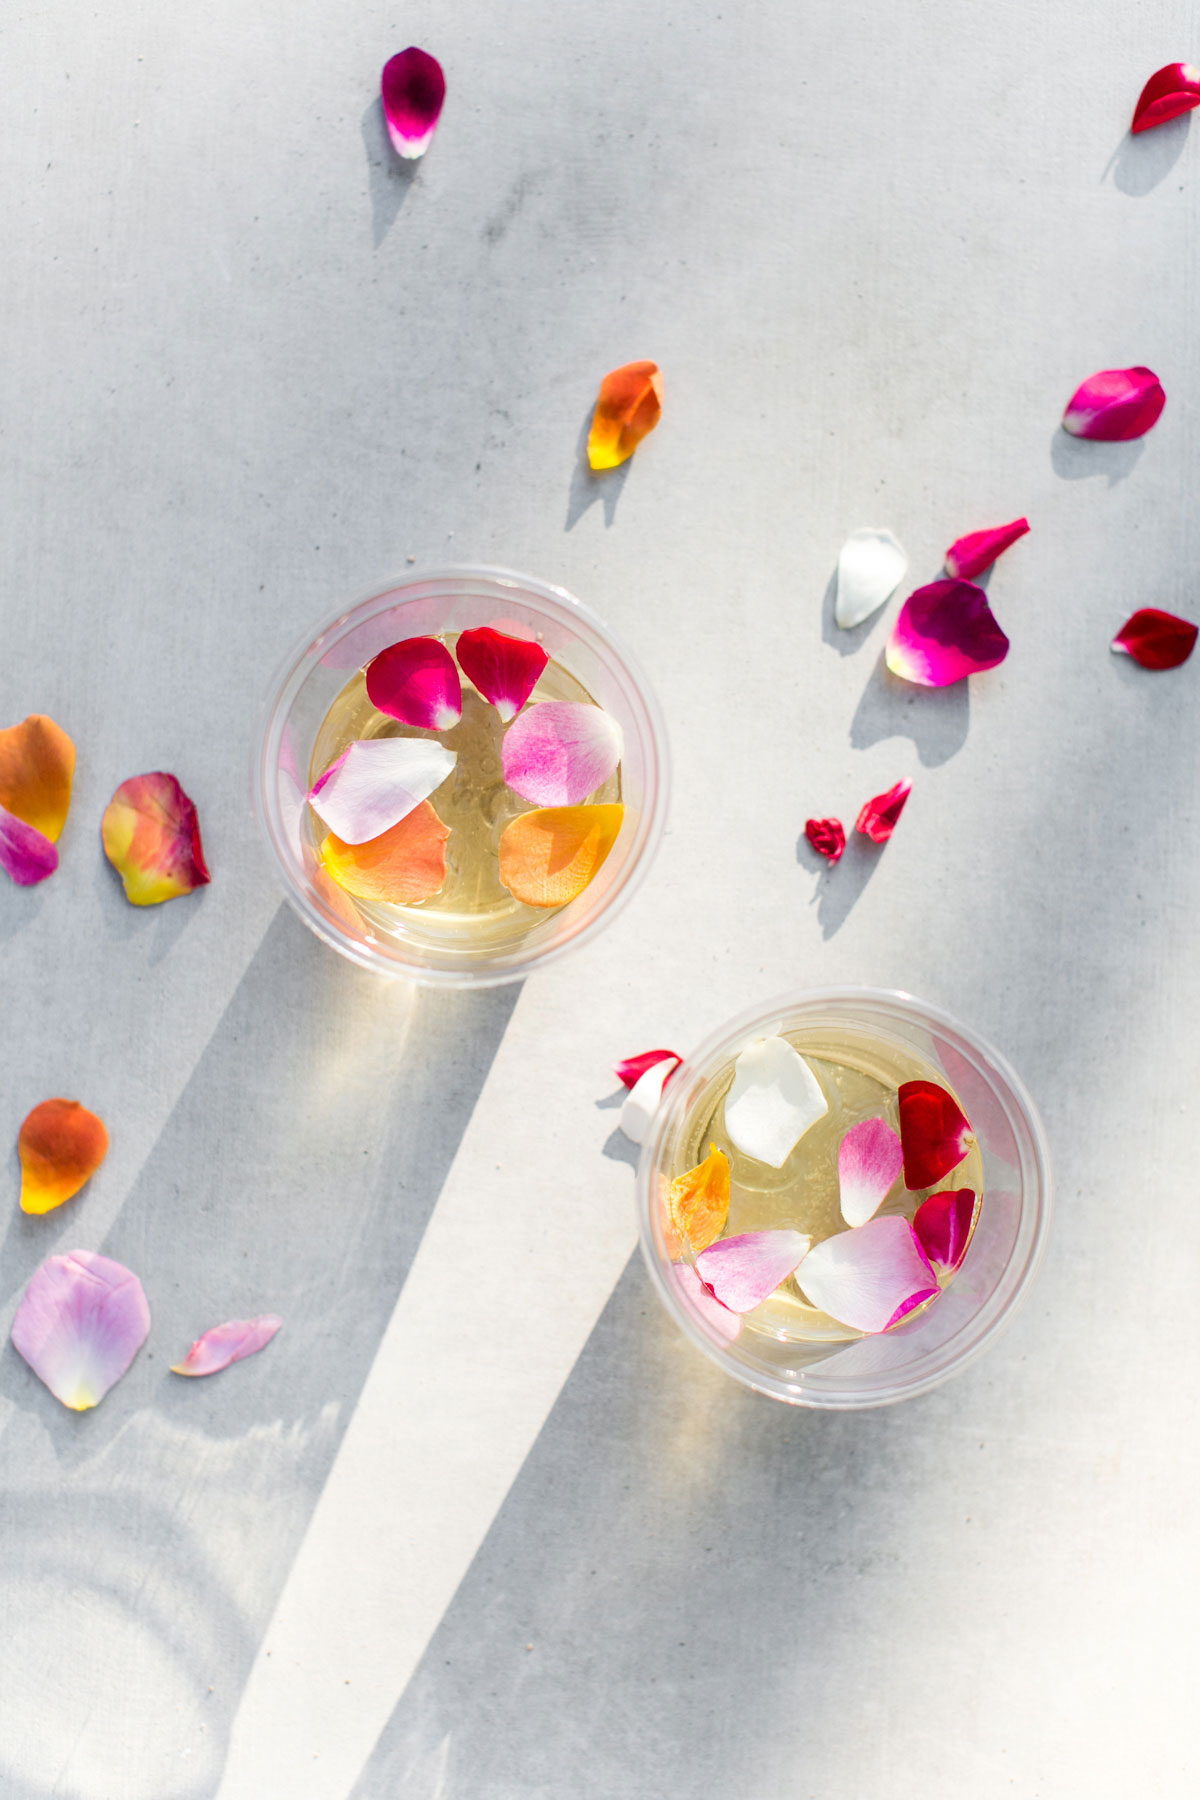 Enjoy some edible flowers in your glass of K-J AVANT Sauvignon Blanc.